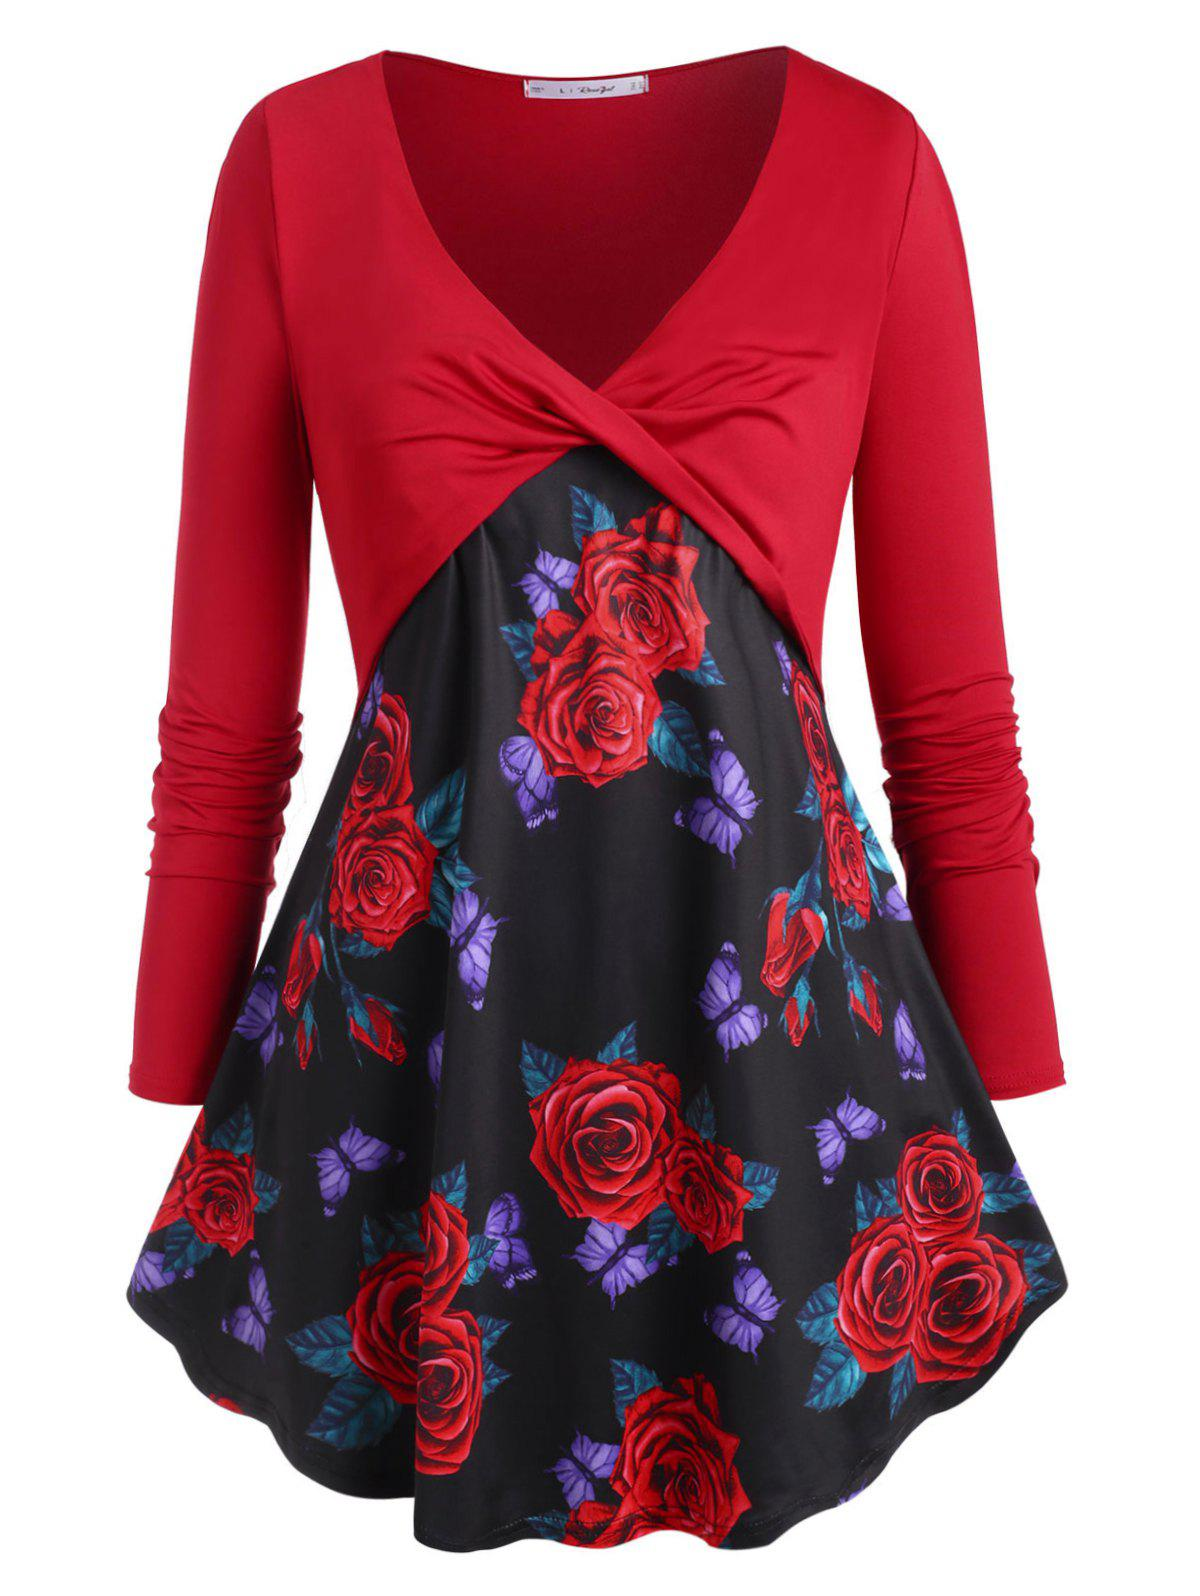 Shop Twisted Front Rose Butterfly Plus Size Top